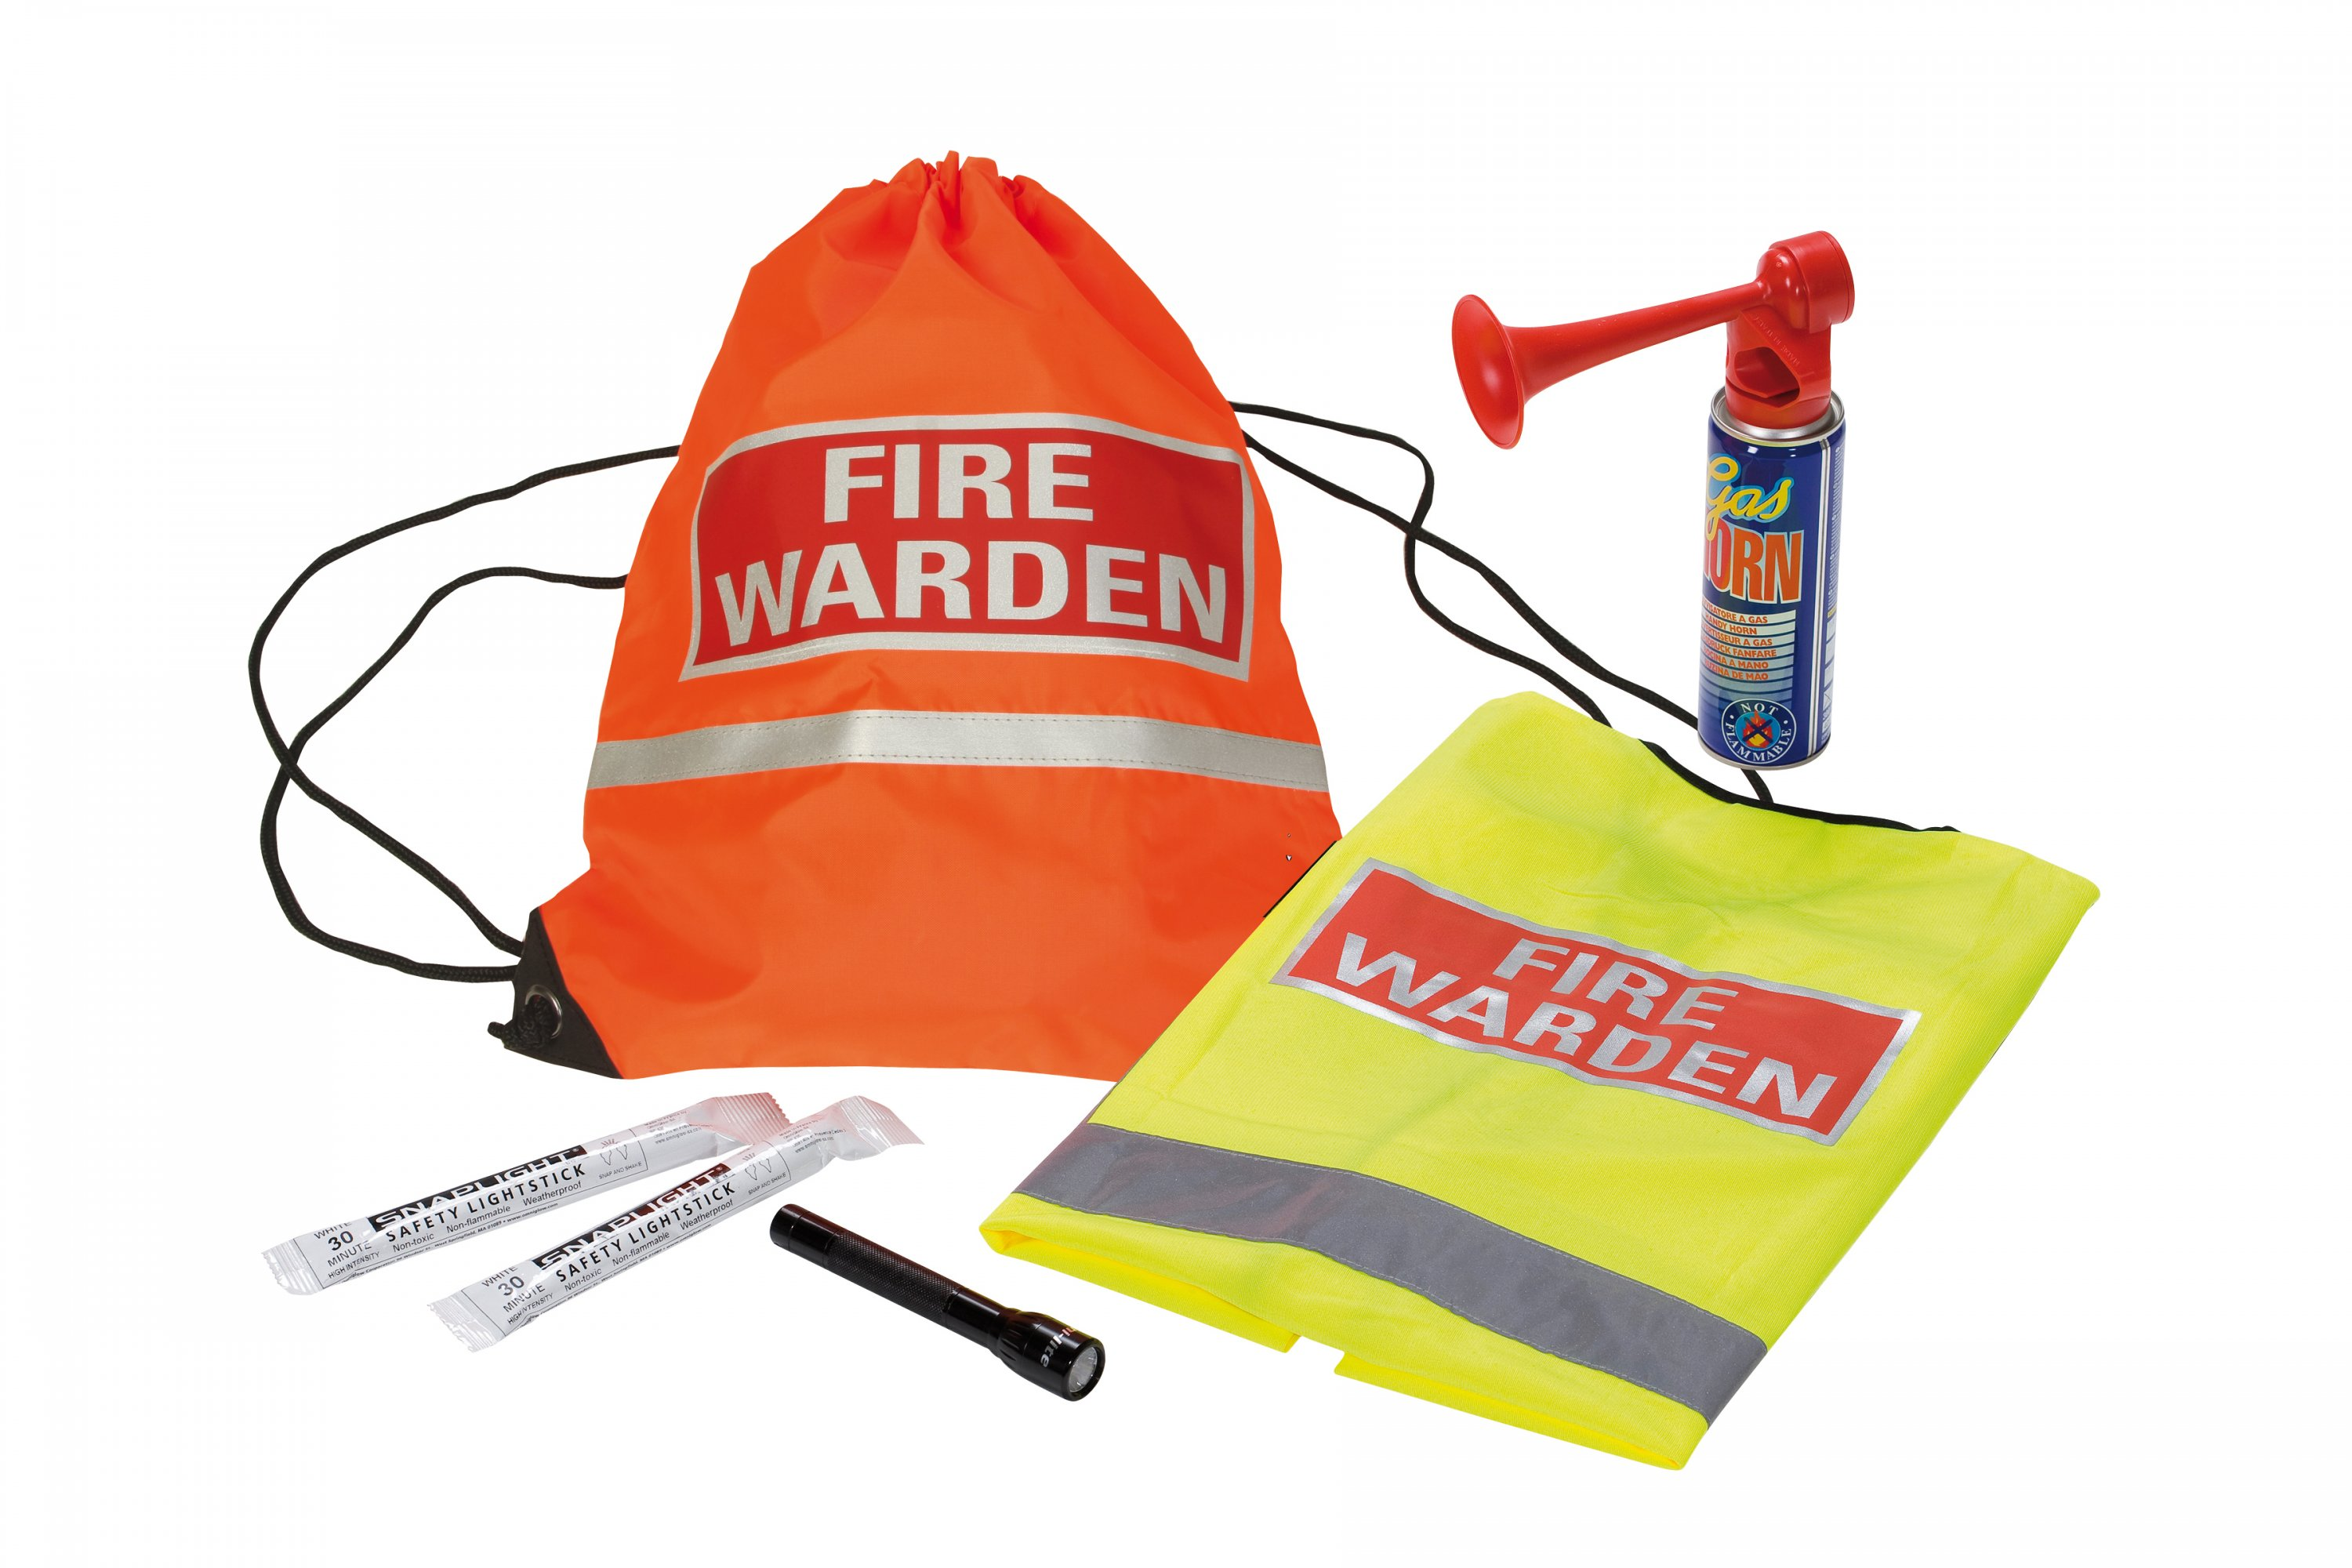 Fire training and warden accessories, Adlridge, Walsall